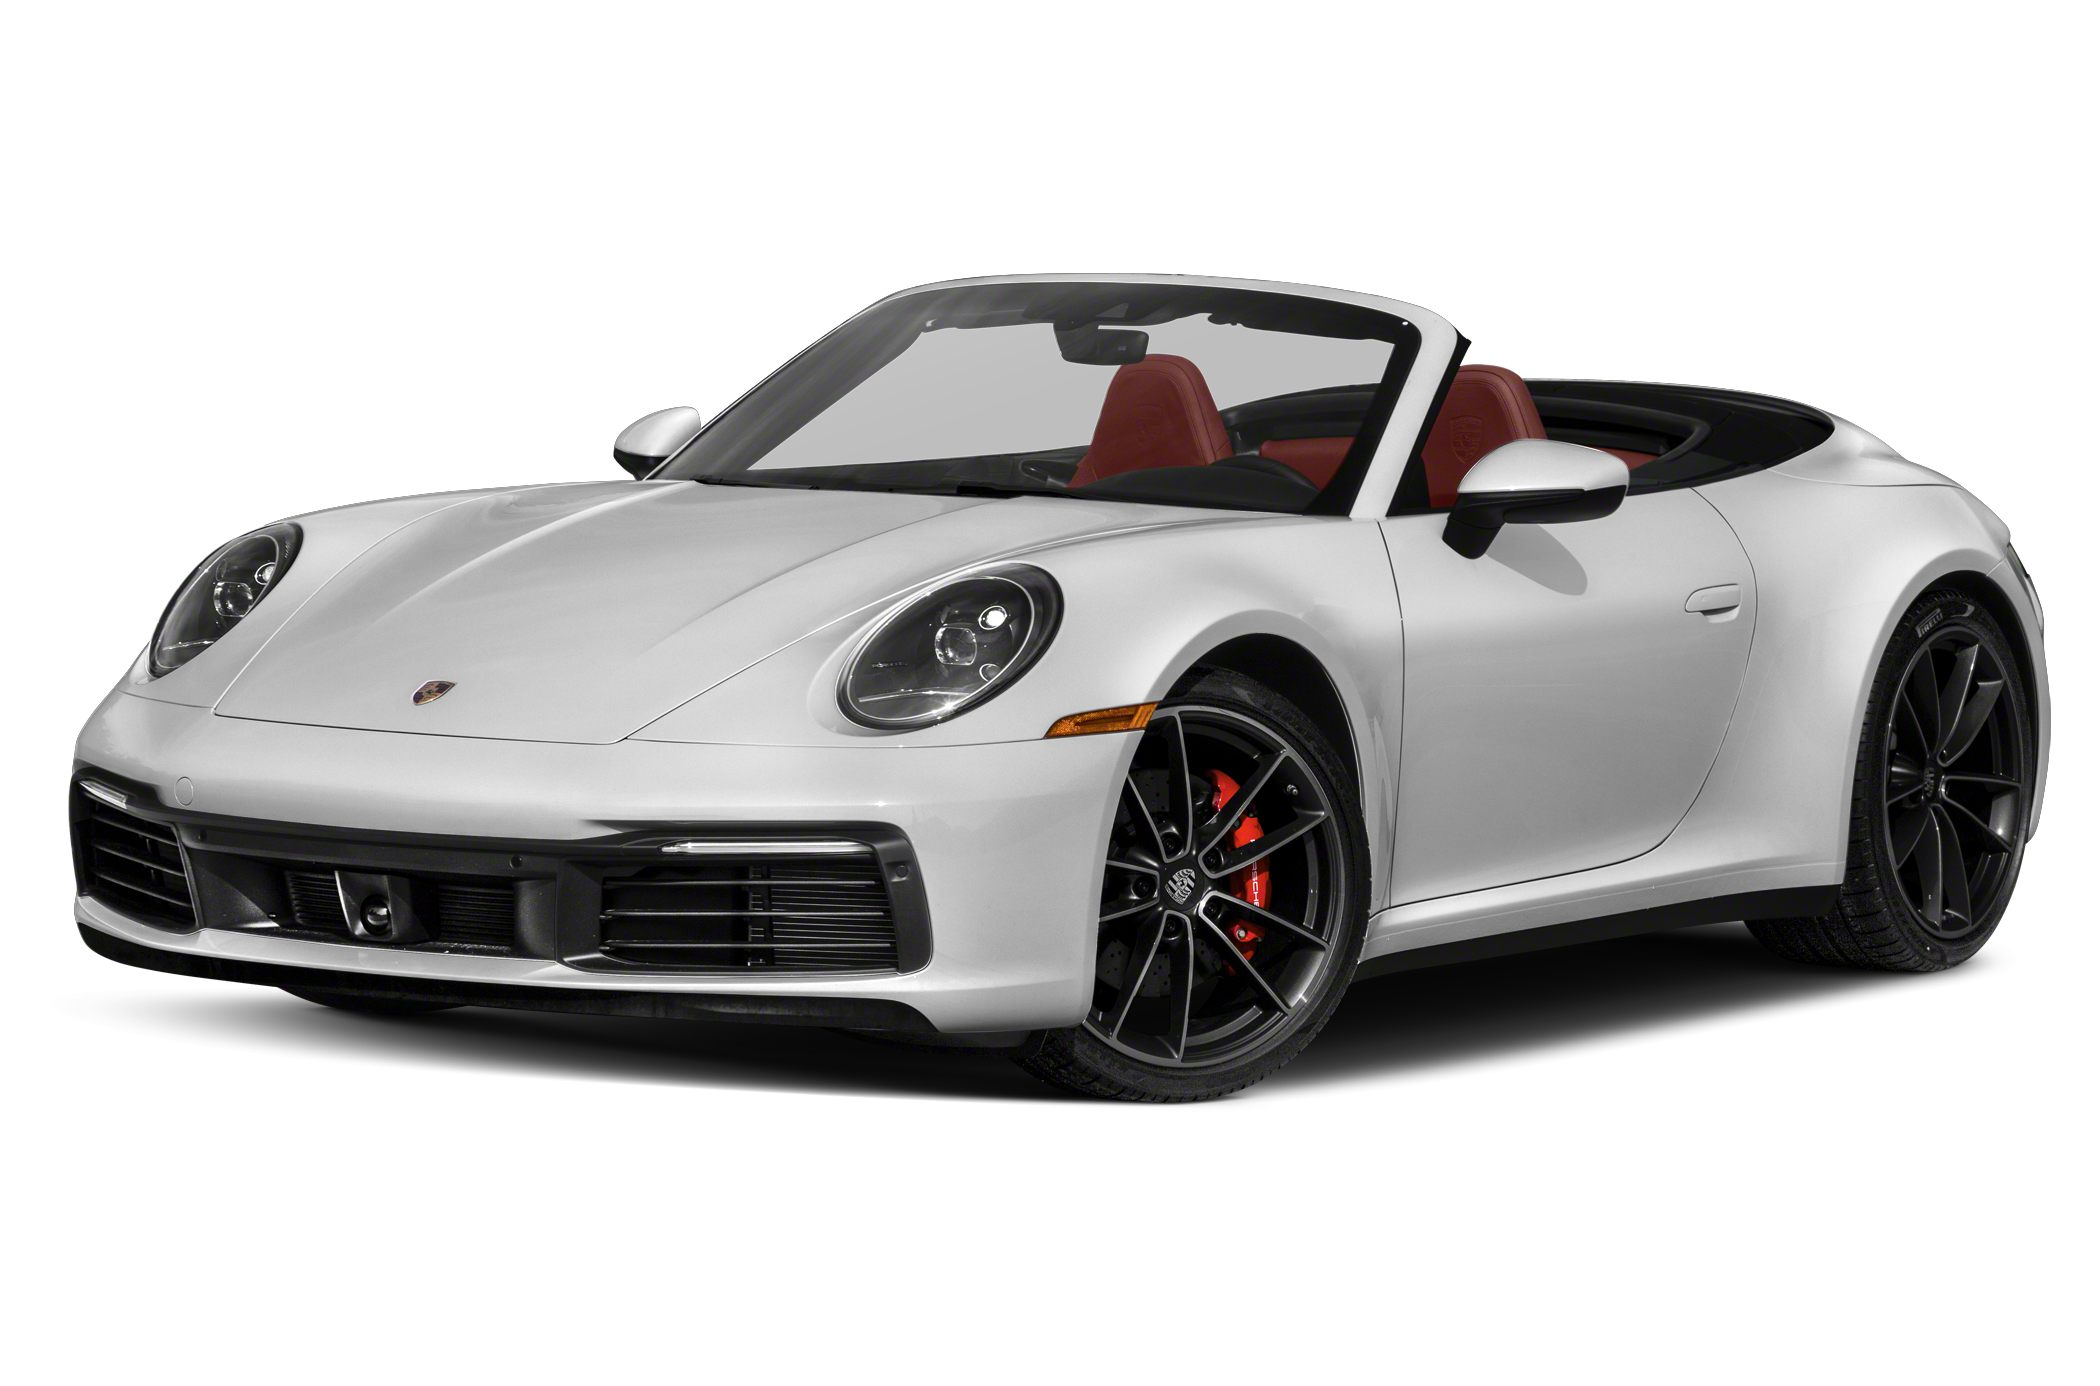 2020 Porsche 911 Carrera S 2dr Rear Wheel Drive Cabriolet Specs And Prices